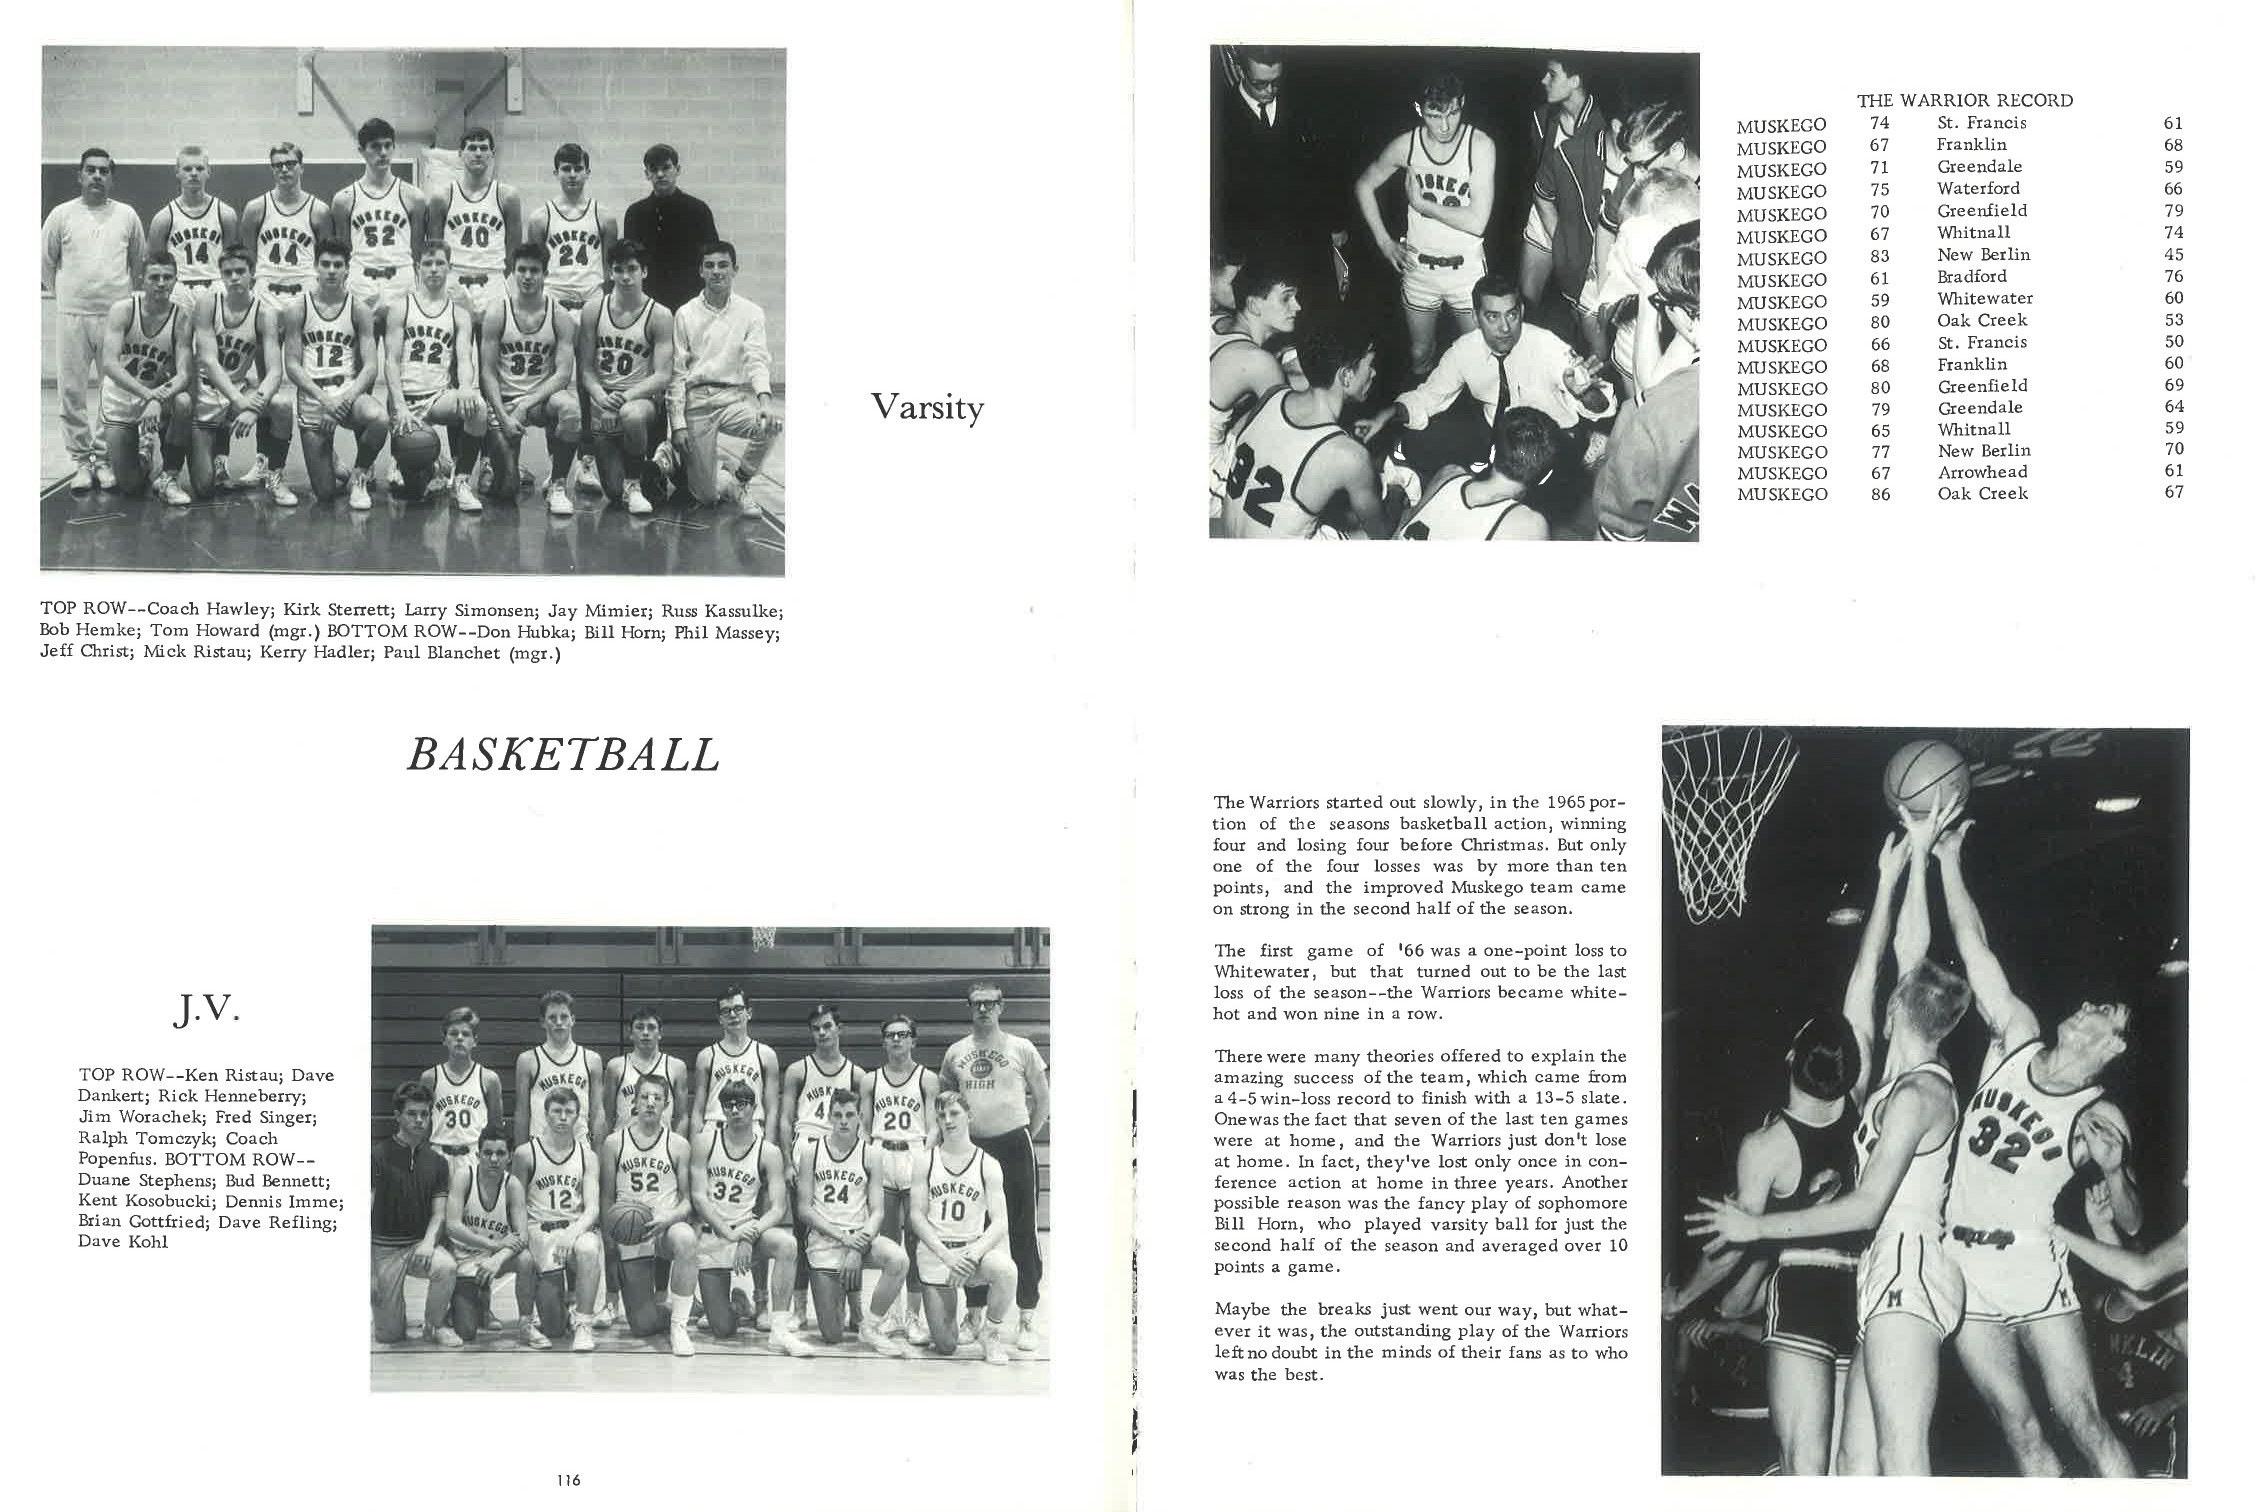 1966_Yearbook_59.jpg